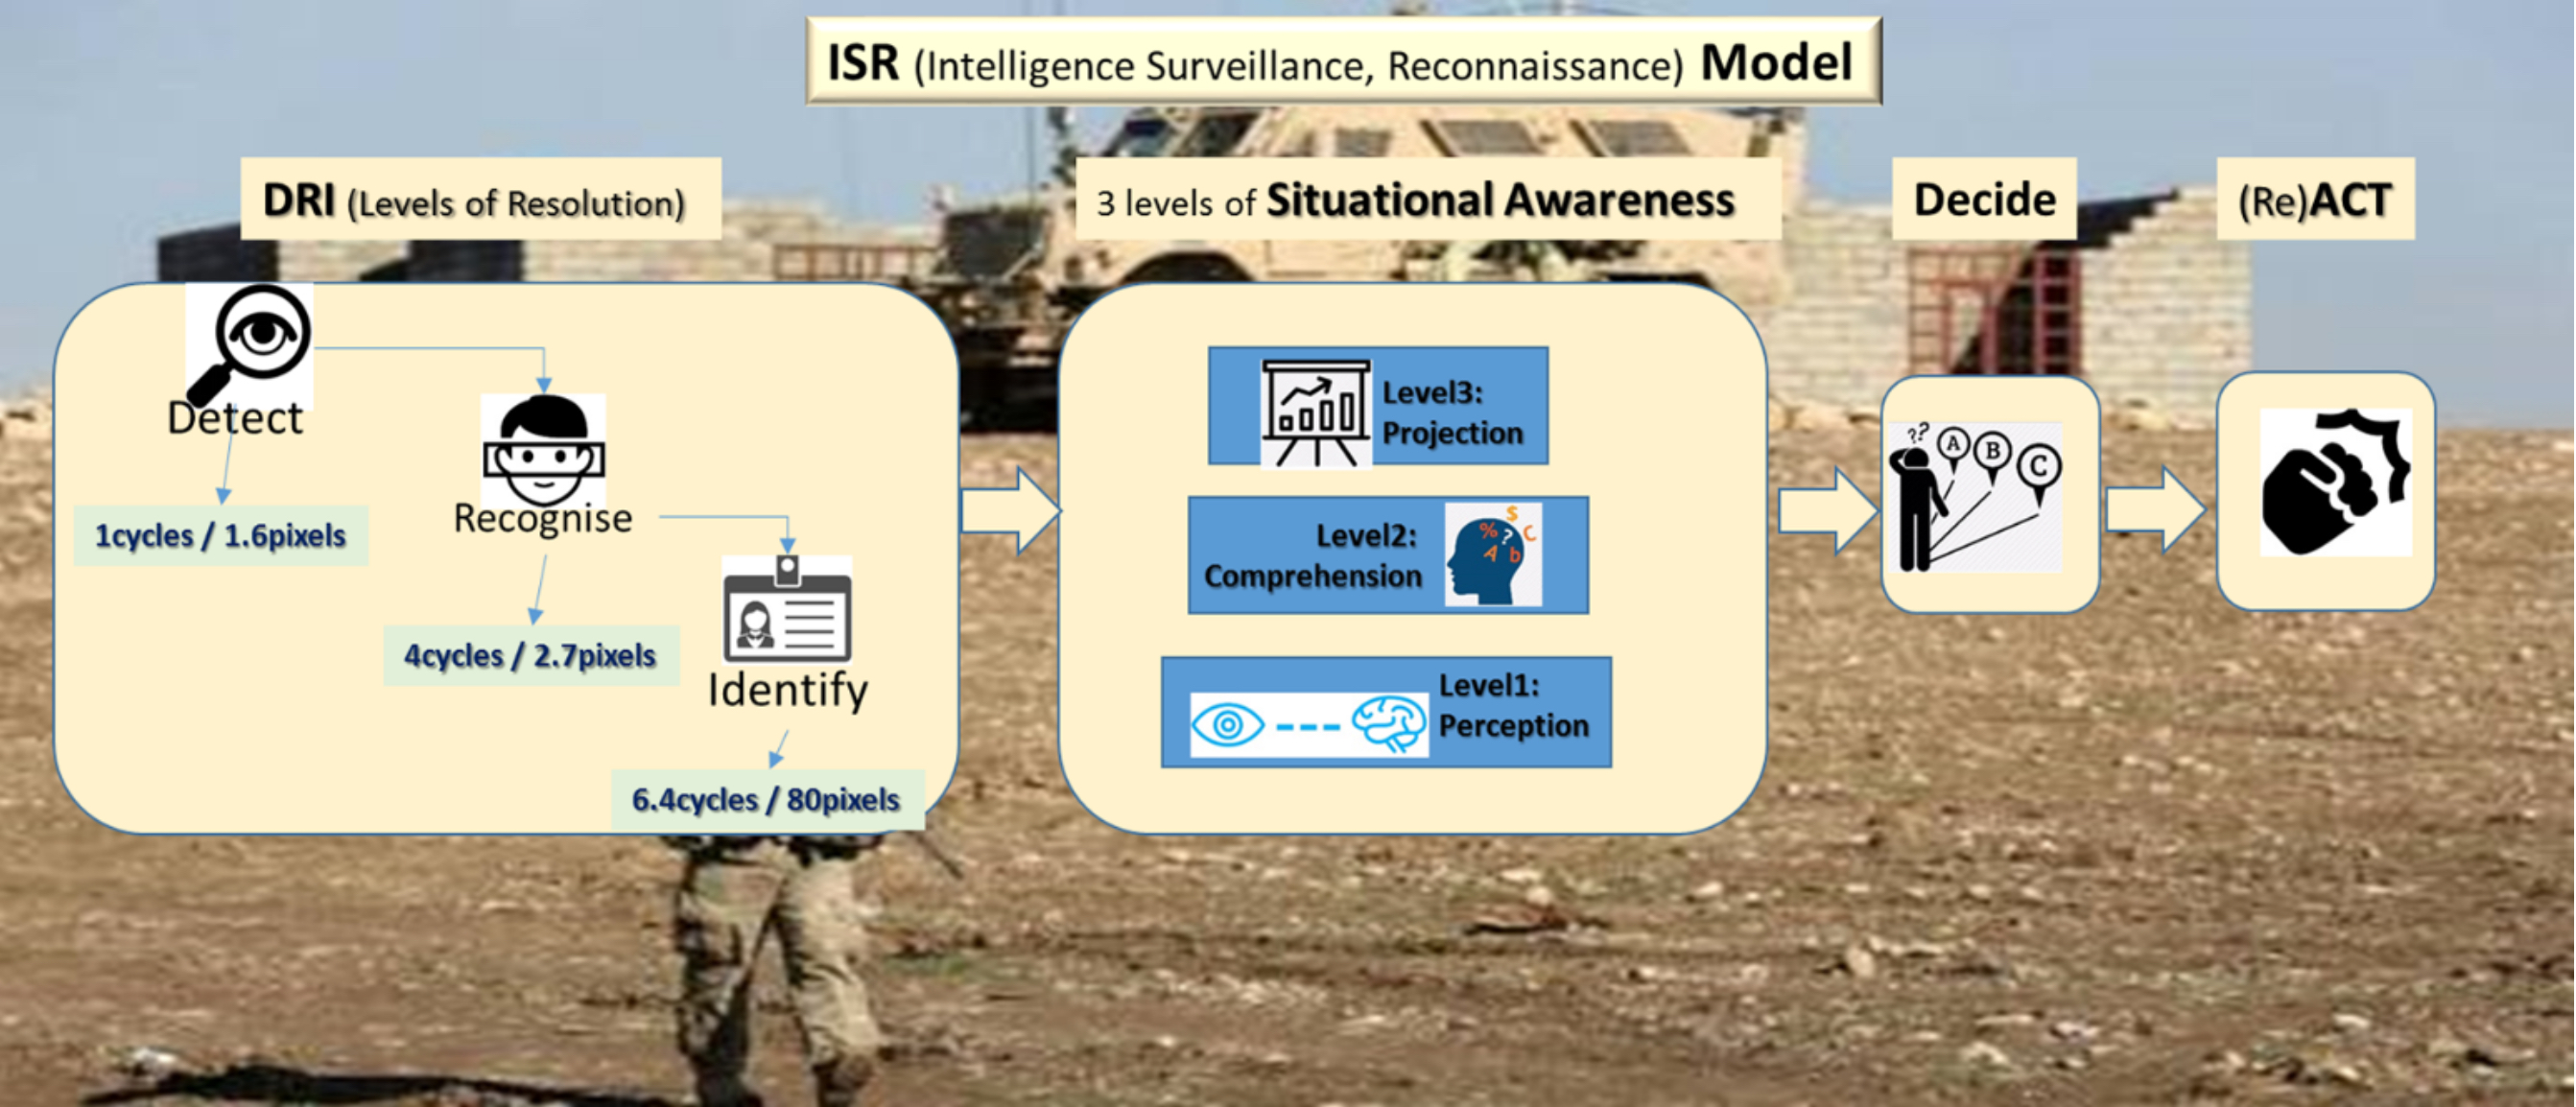 Drones in Security and Surveillance ISR Model